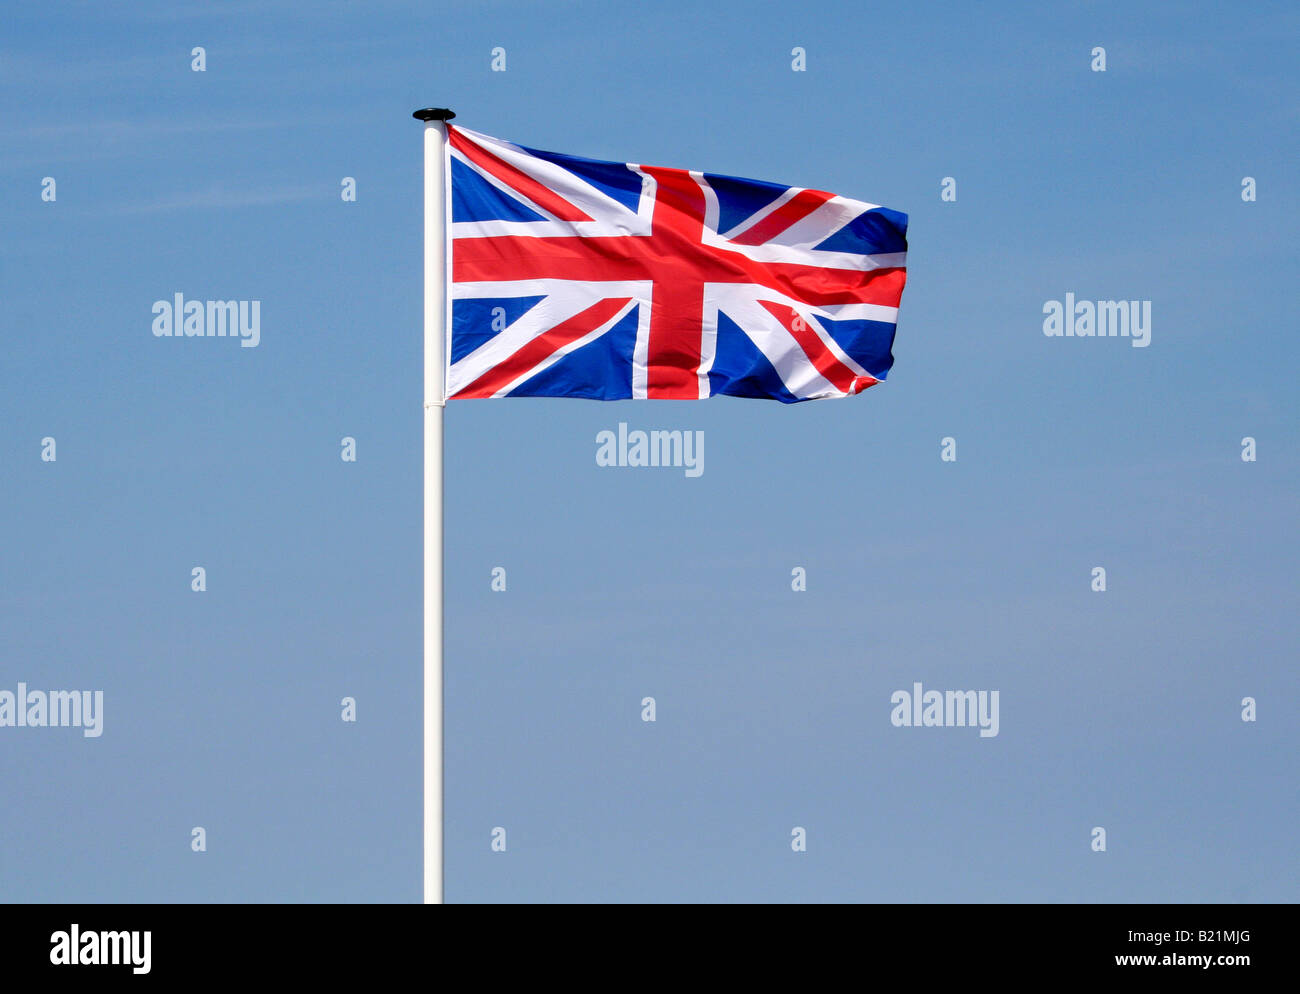 Union Jack flag on a white flagpole fluttering in the breeze. - Stock Image